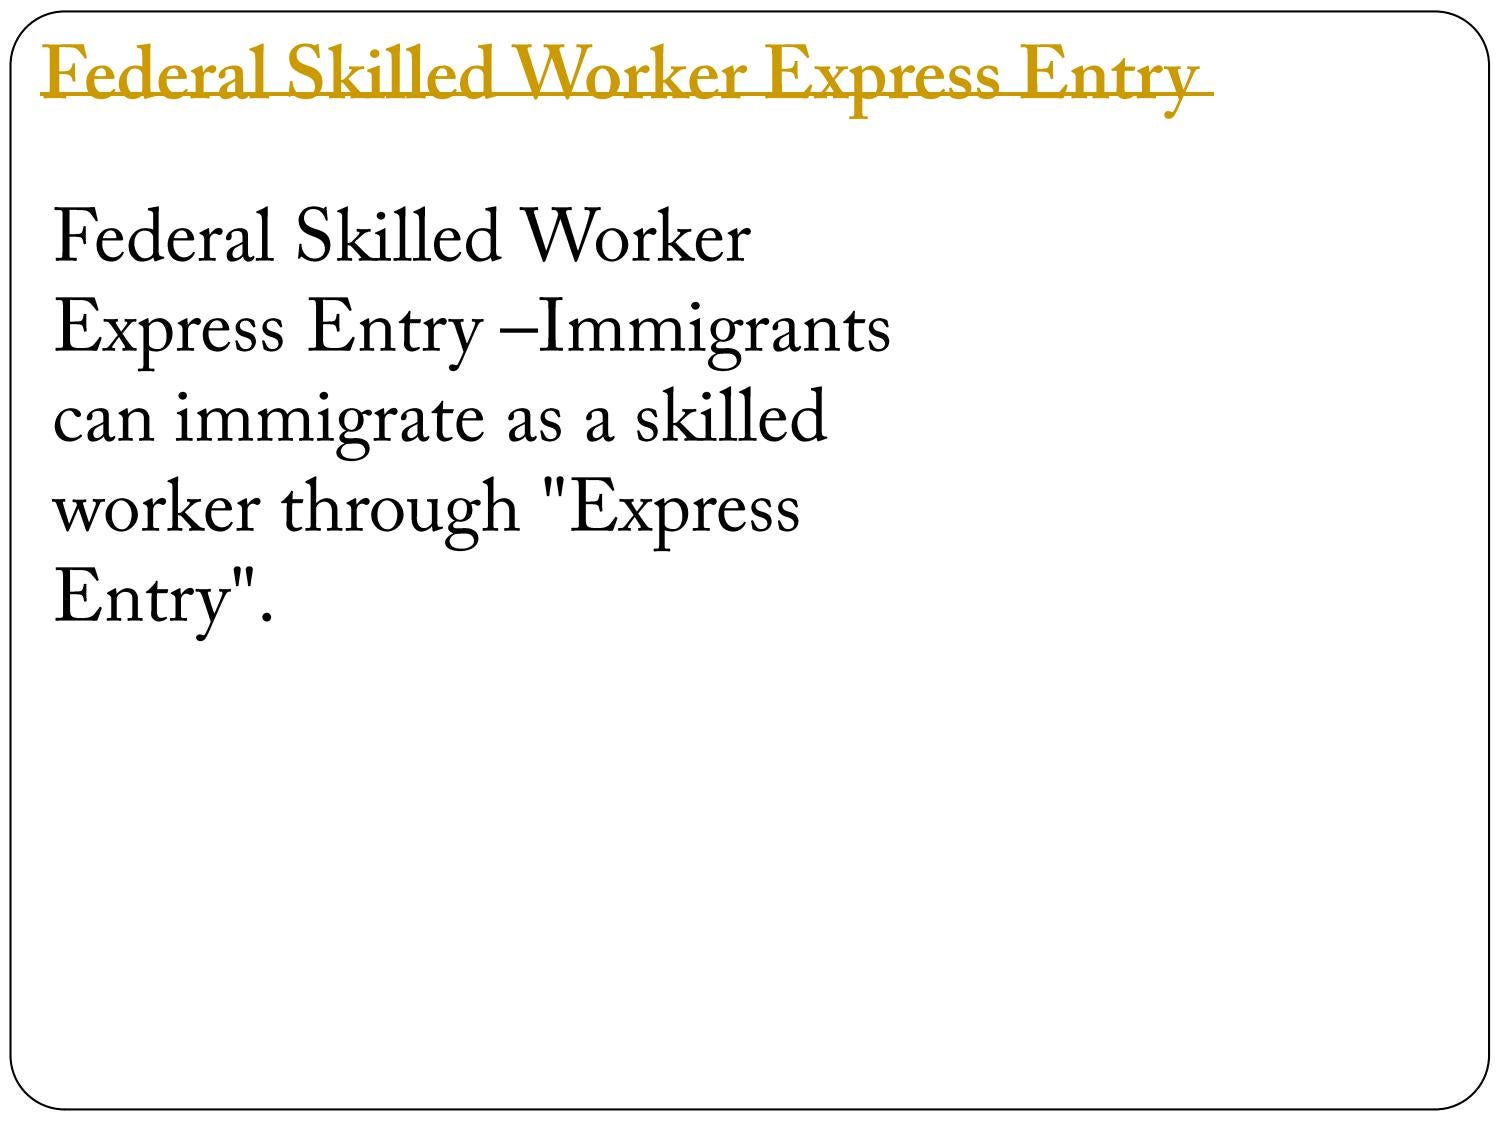 personal experience of working in federal express Enter your personal details, work experience, education, etc (note: you may exit the profile at any time your information will be saved your information will be saved but, if you do not complete the express entry profile in 30 days , you will not be able to submit it and will have to start again.